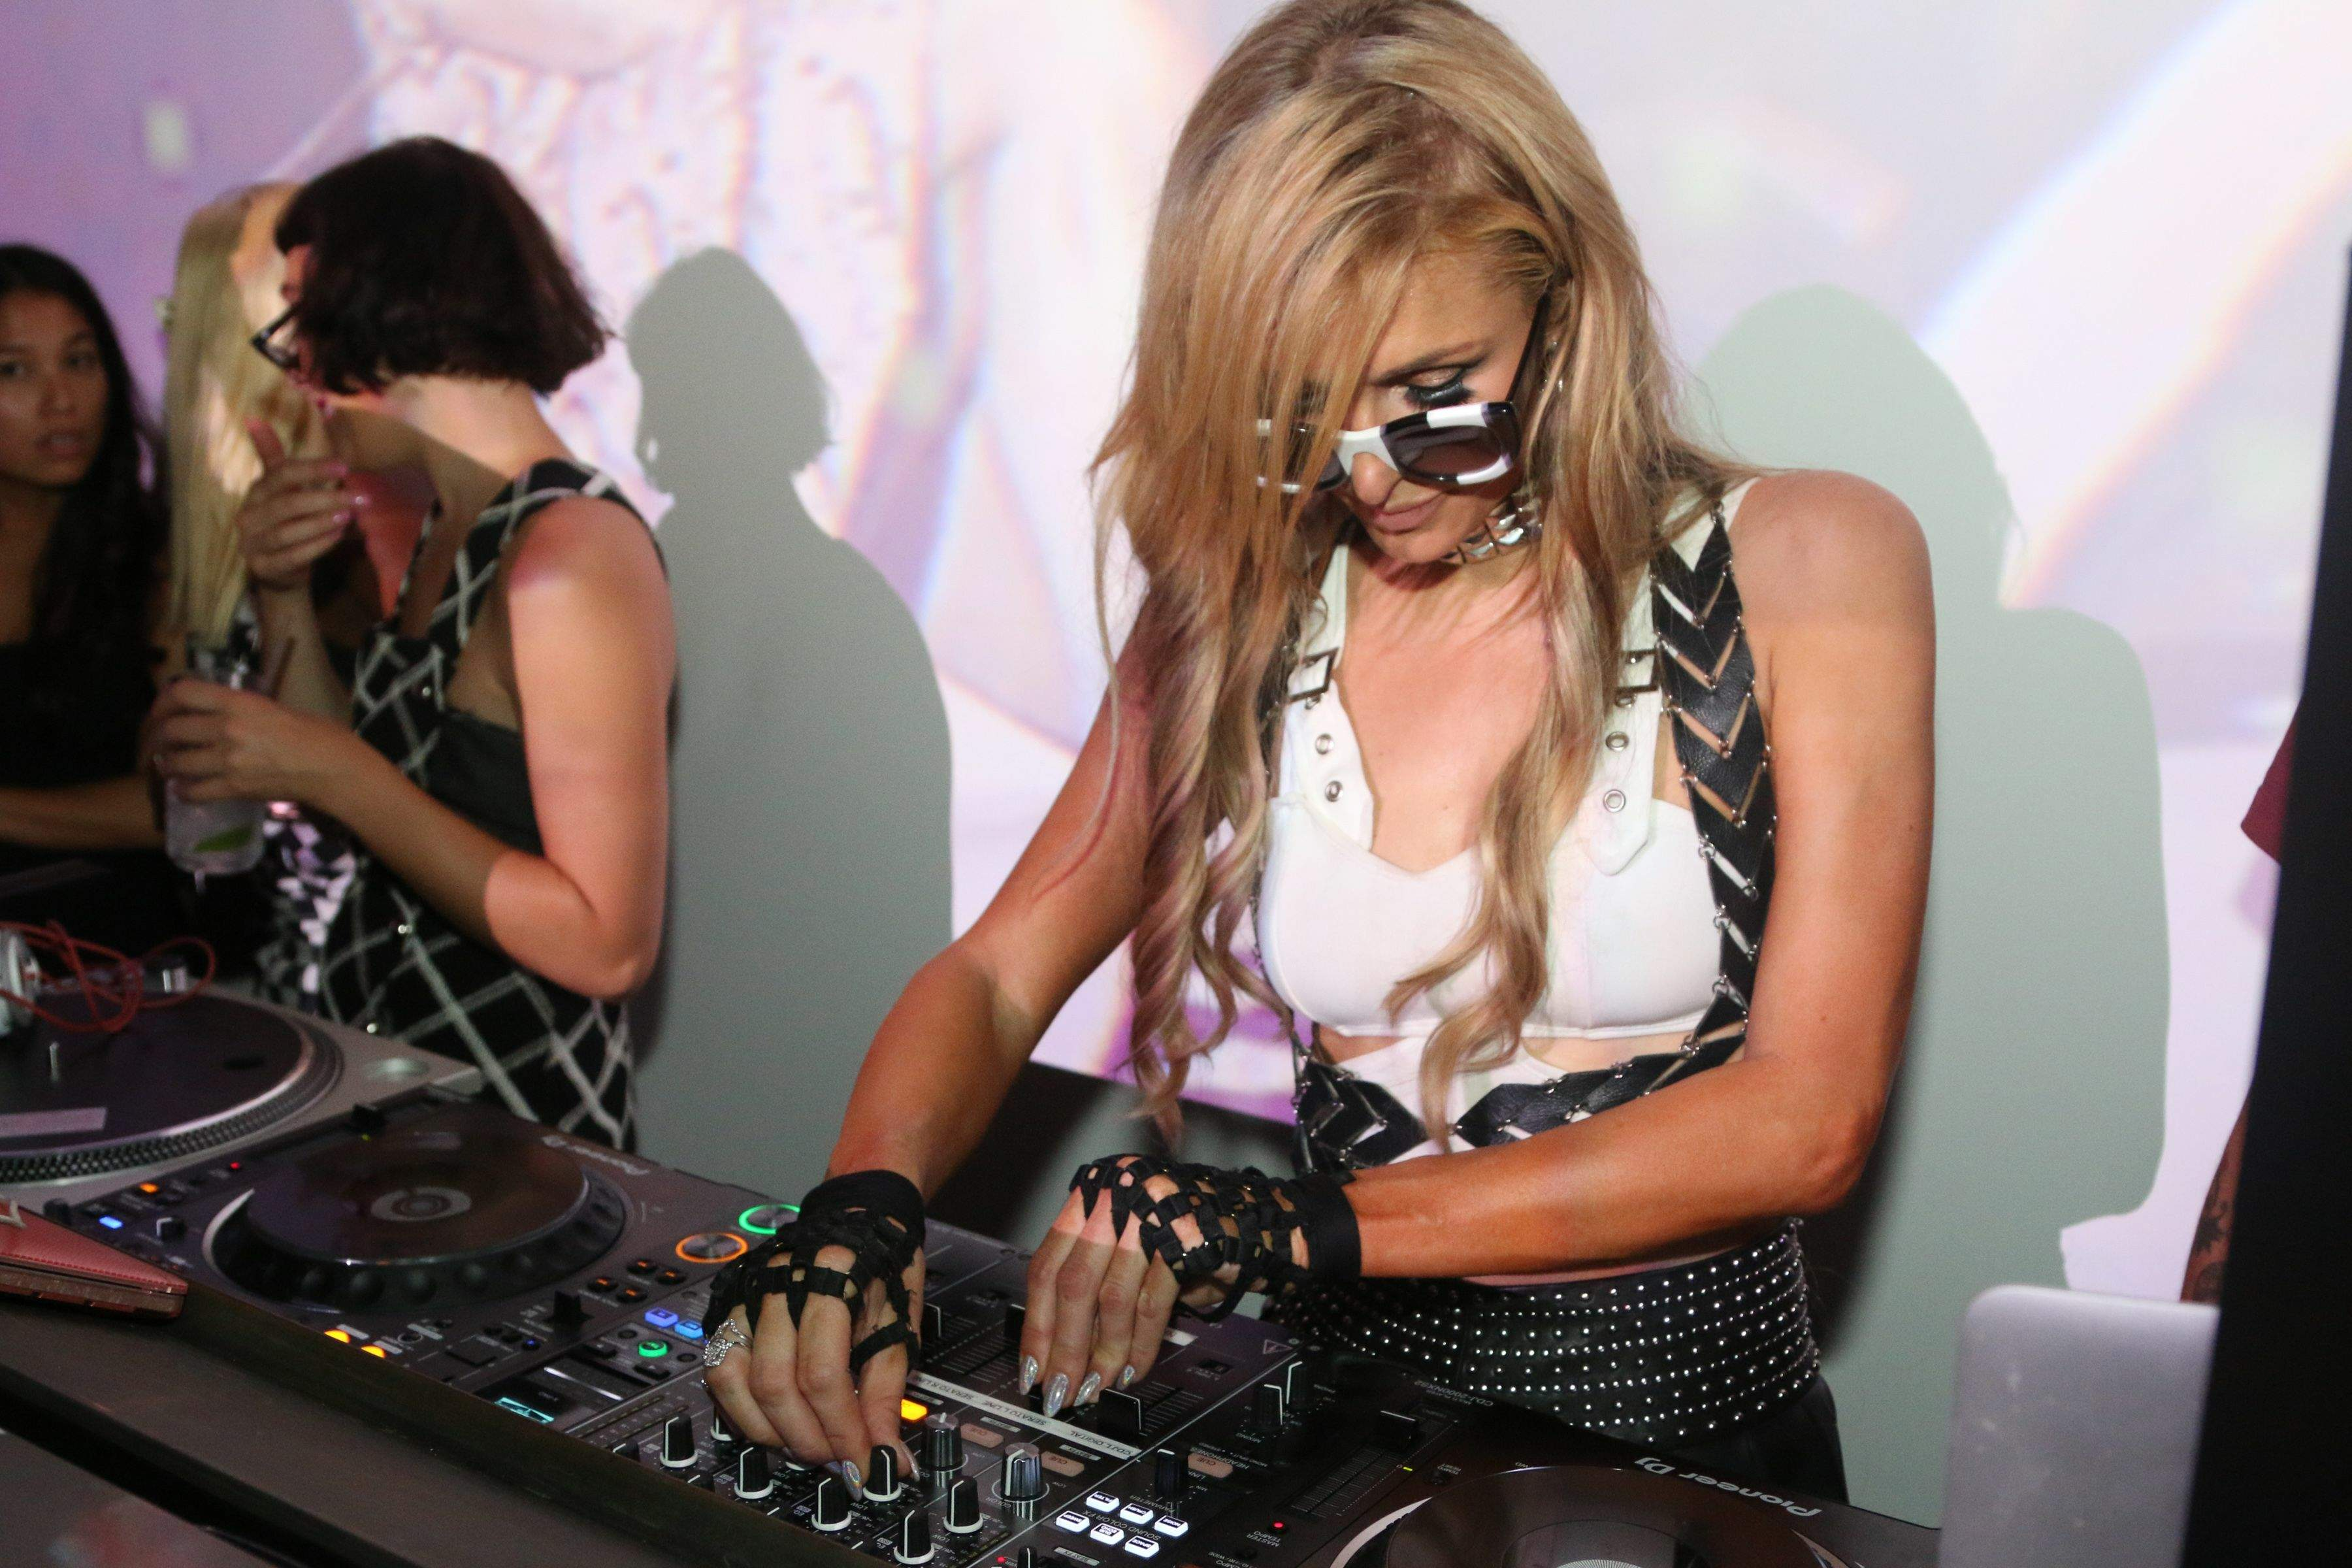 Paris Hilton attends Galore and Juicy Couture Ball